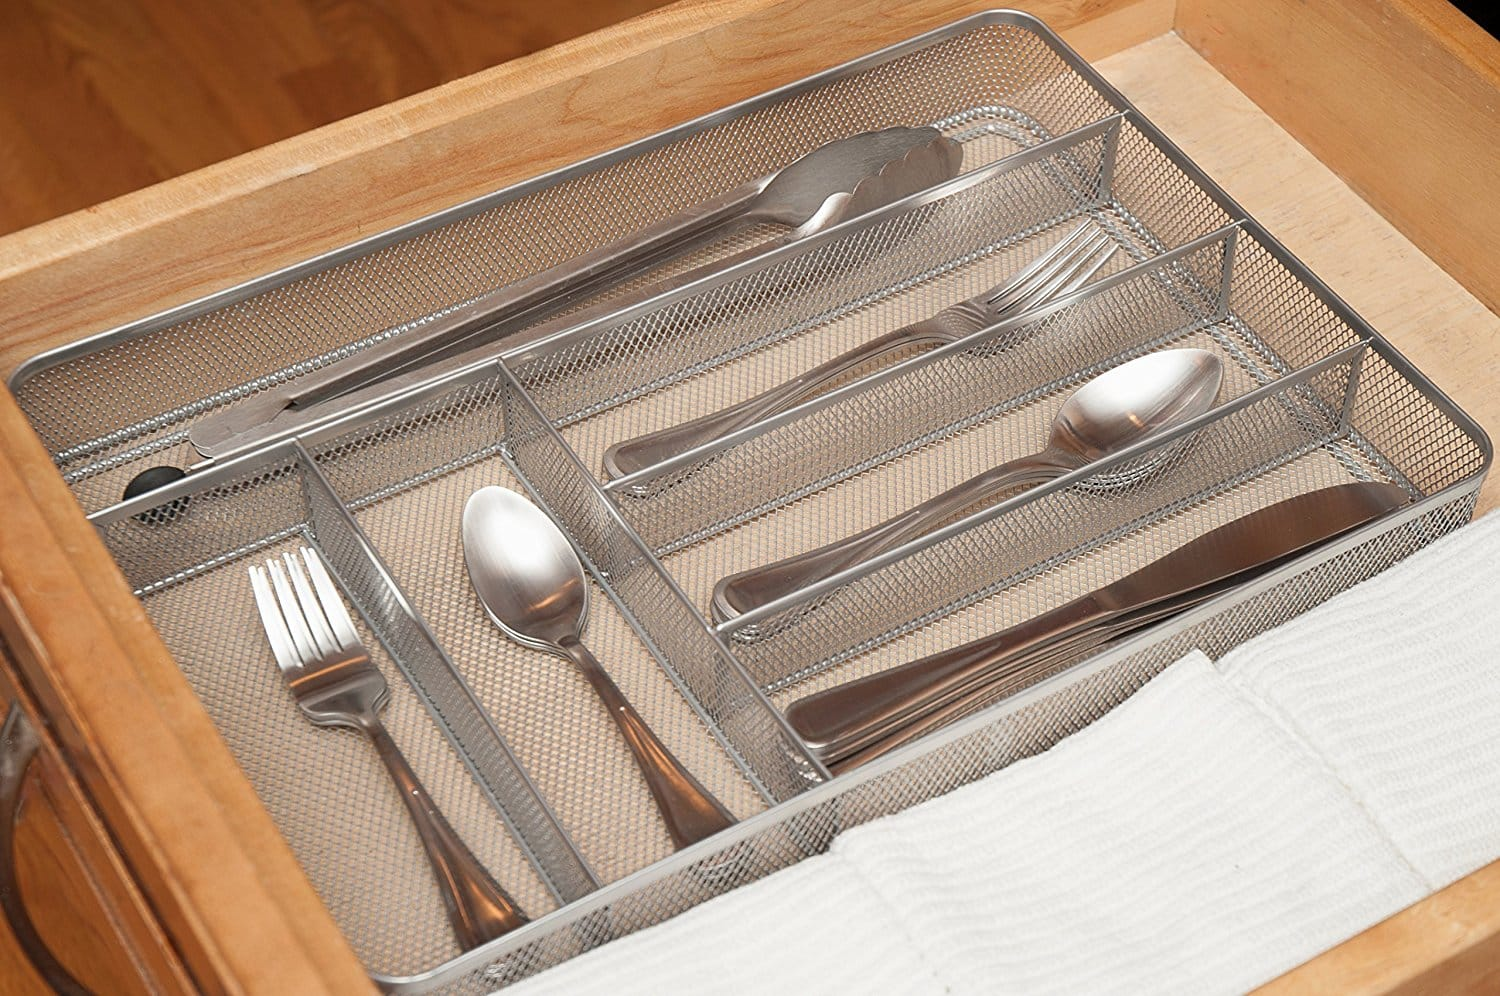 Top 10 Best Silverware Trays in 2019 - TopReviewProducts